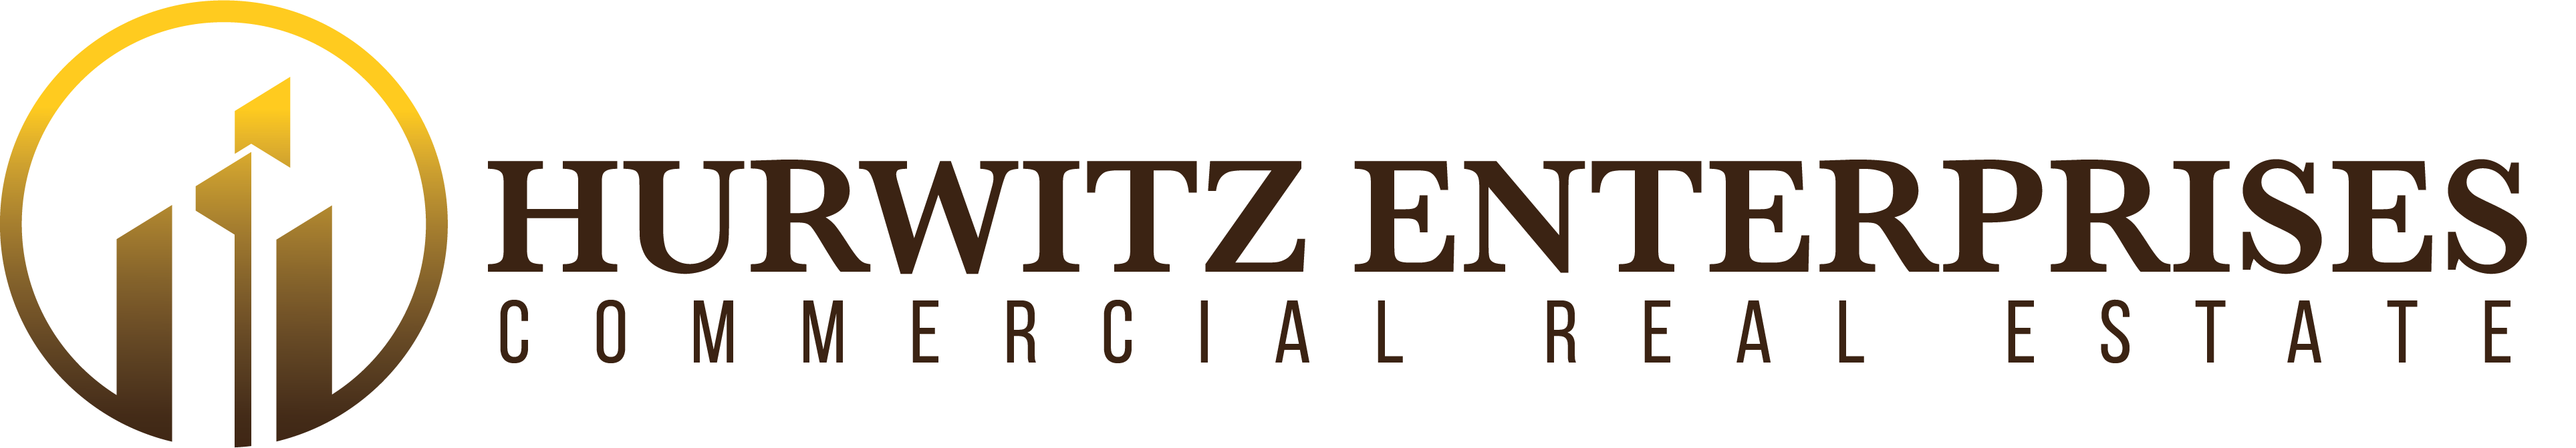 Hurwitz Enterprises LLC